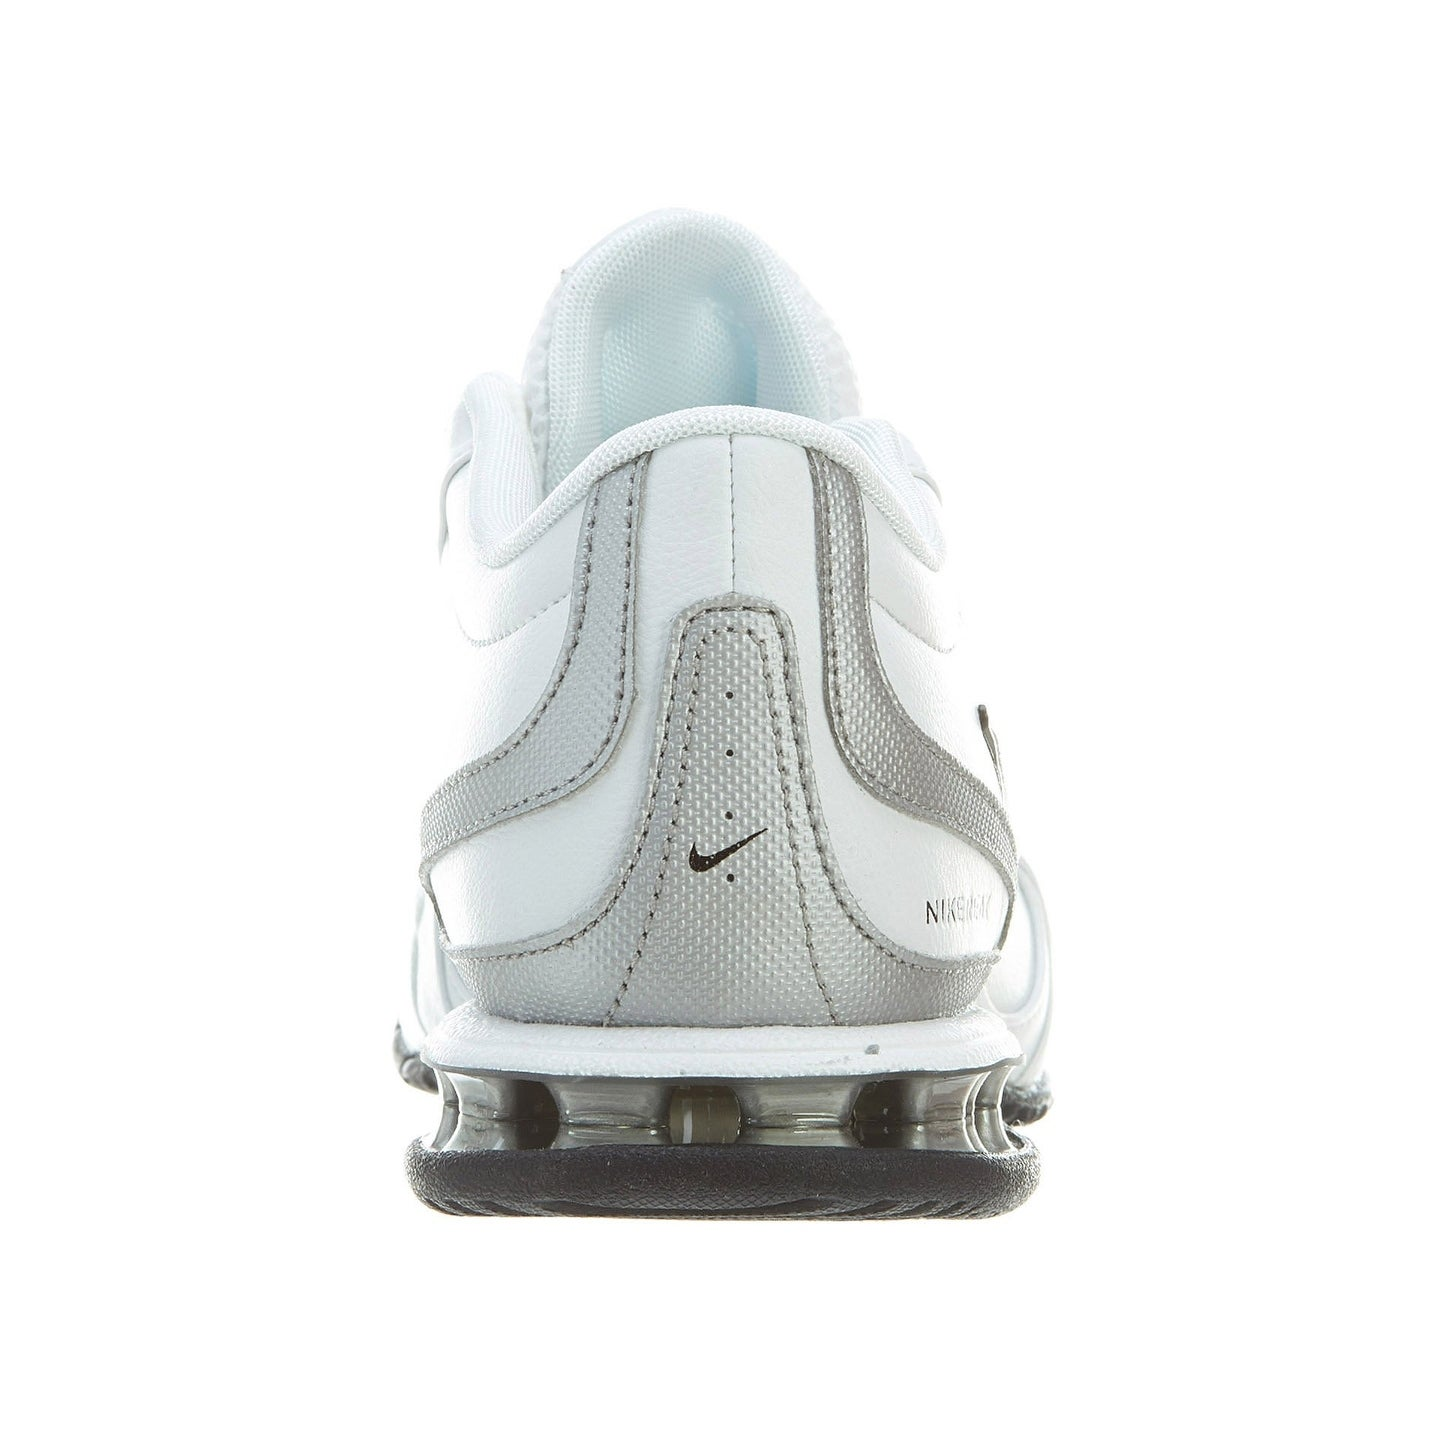 huge sale 7307c aec26 Shop New Nike Men s Reax TR III SL Cross Trainer White Silver - white   metallic  silver - Free Shipping Today - Overstock - 17755607